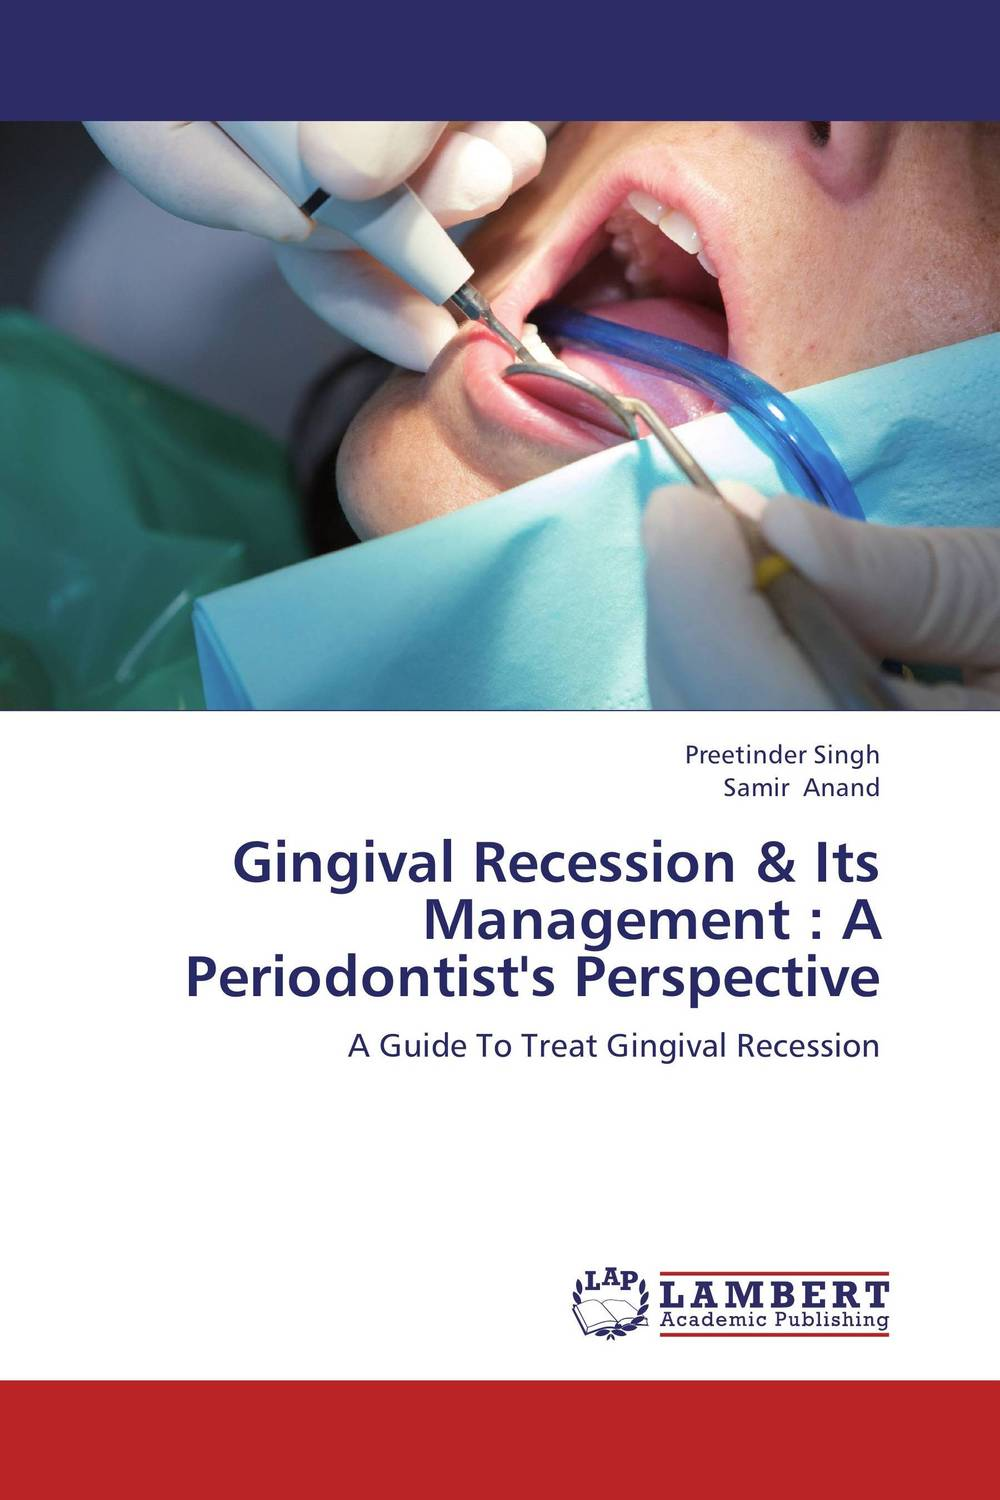 Gingival Recession & Its Management : A Periodontist's Perspective